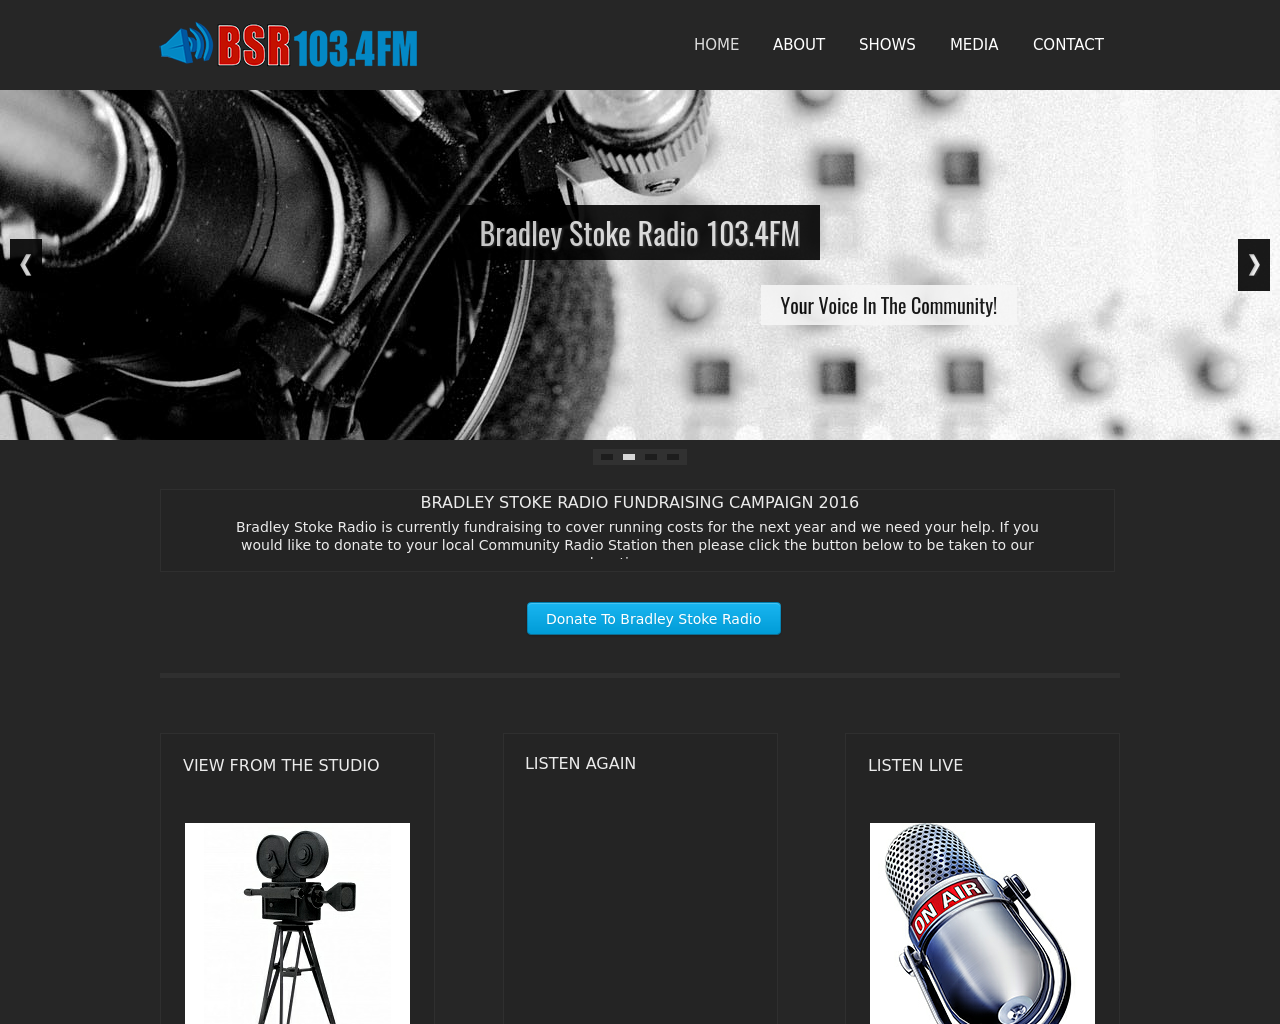 BSR-Fm-103.4-Advertising-Reviews-Pricing